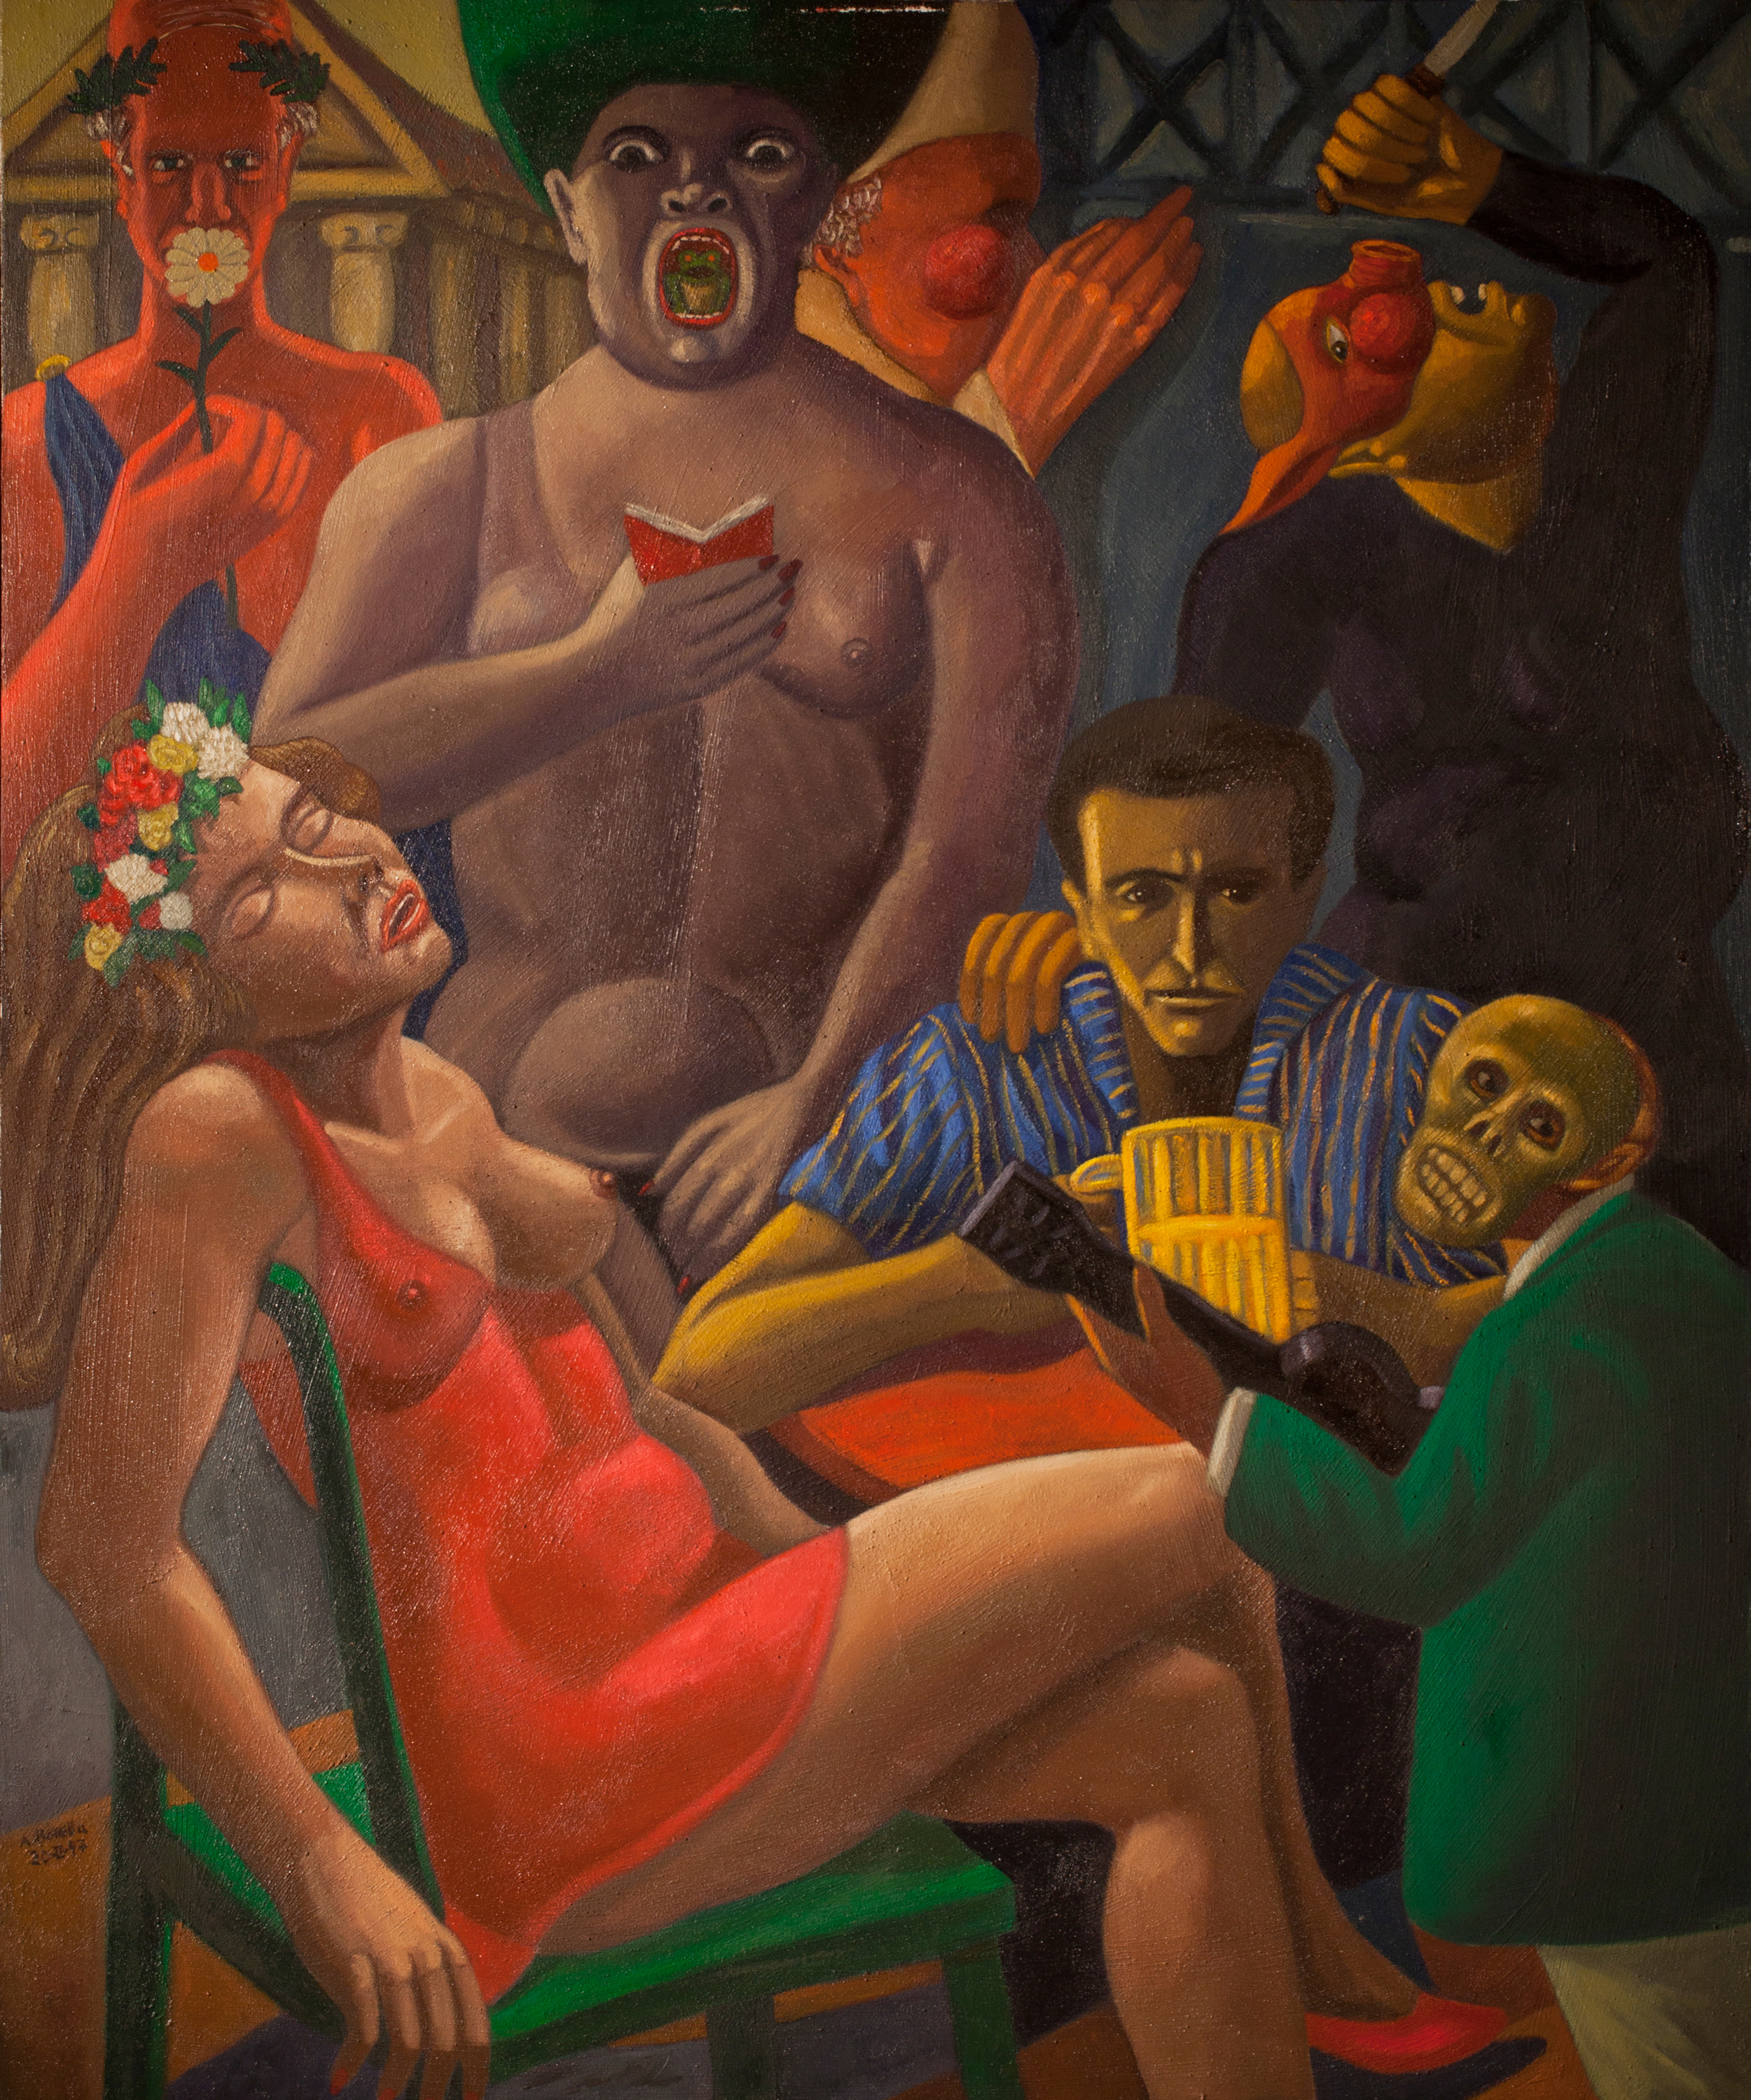 """Antonio Bonilla, one of the artists from Janine's gallery, made intense work reflecting the civil war. This painting is titled, """"Under the Shadow of the Temple of Justice"""" (""""Bajo la sombra del templo de la justicia"""" in the original Spanish). (Copyright: laberinto projects archive.)"""